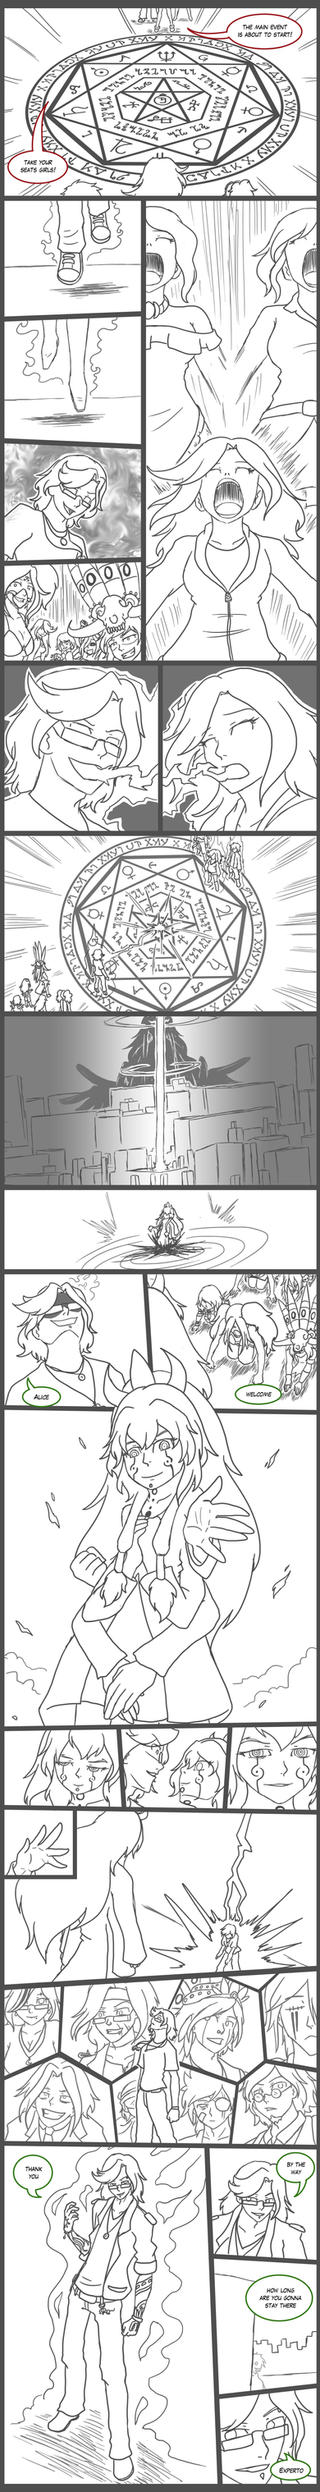 Rebellion 04-10: Why We Do What We Do by Enyoiyourself